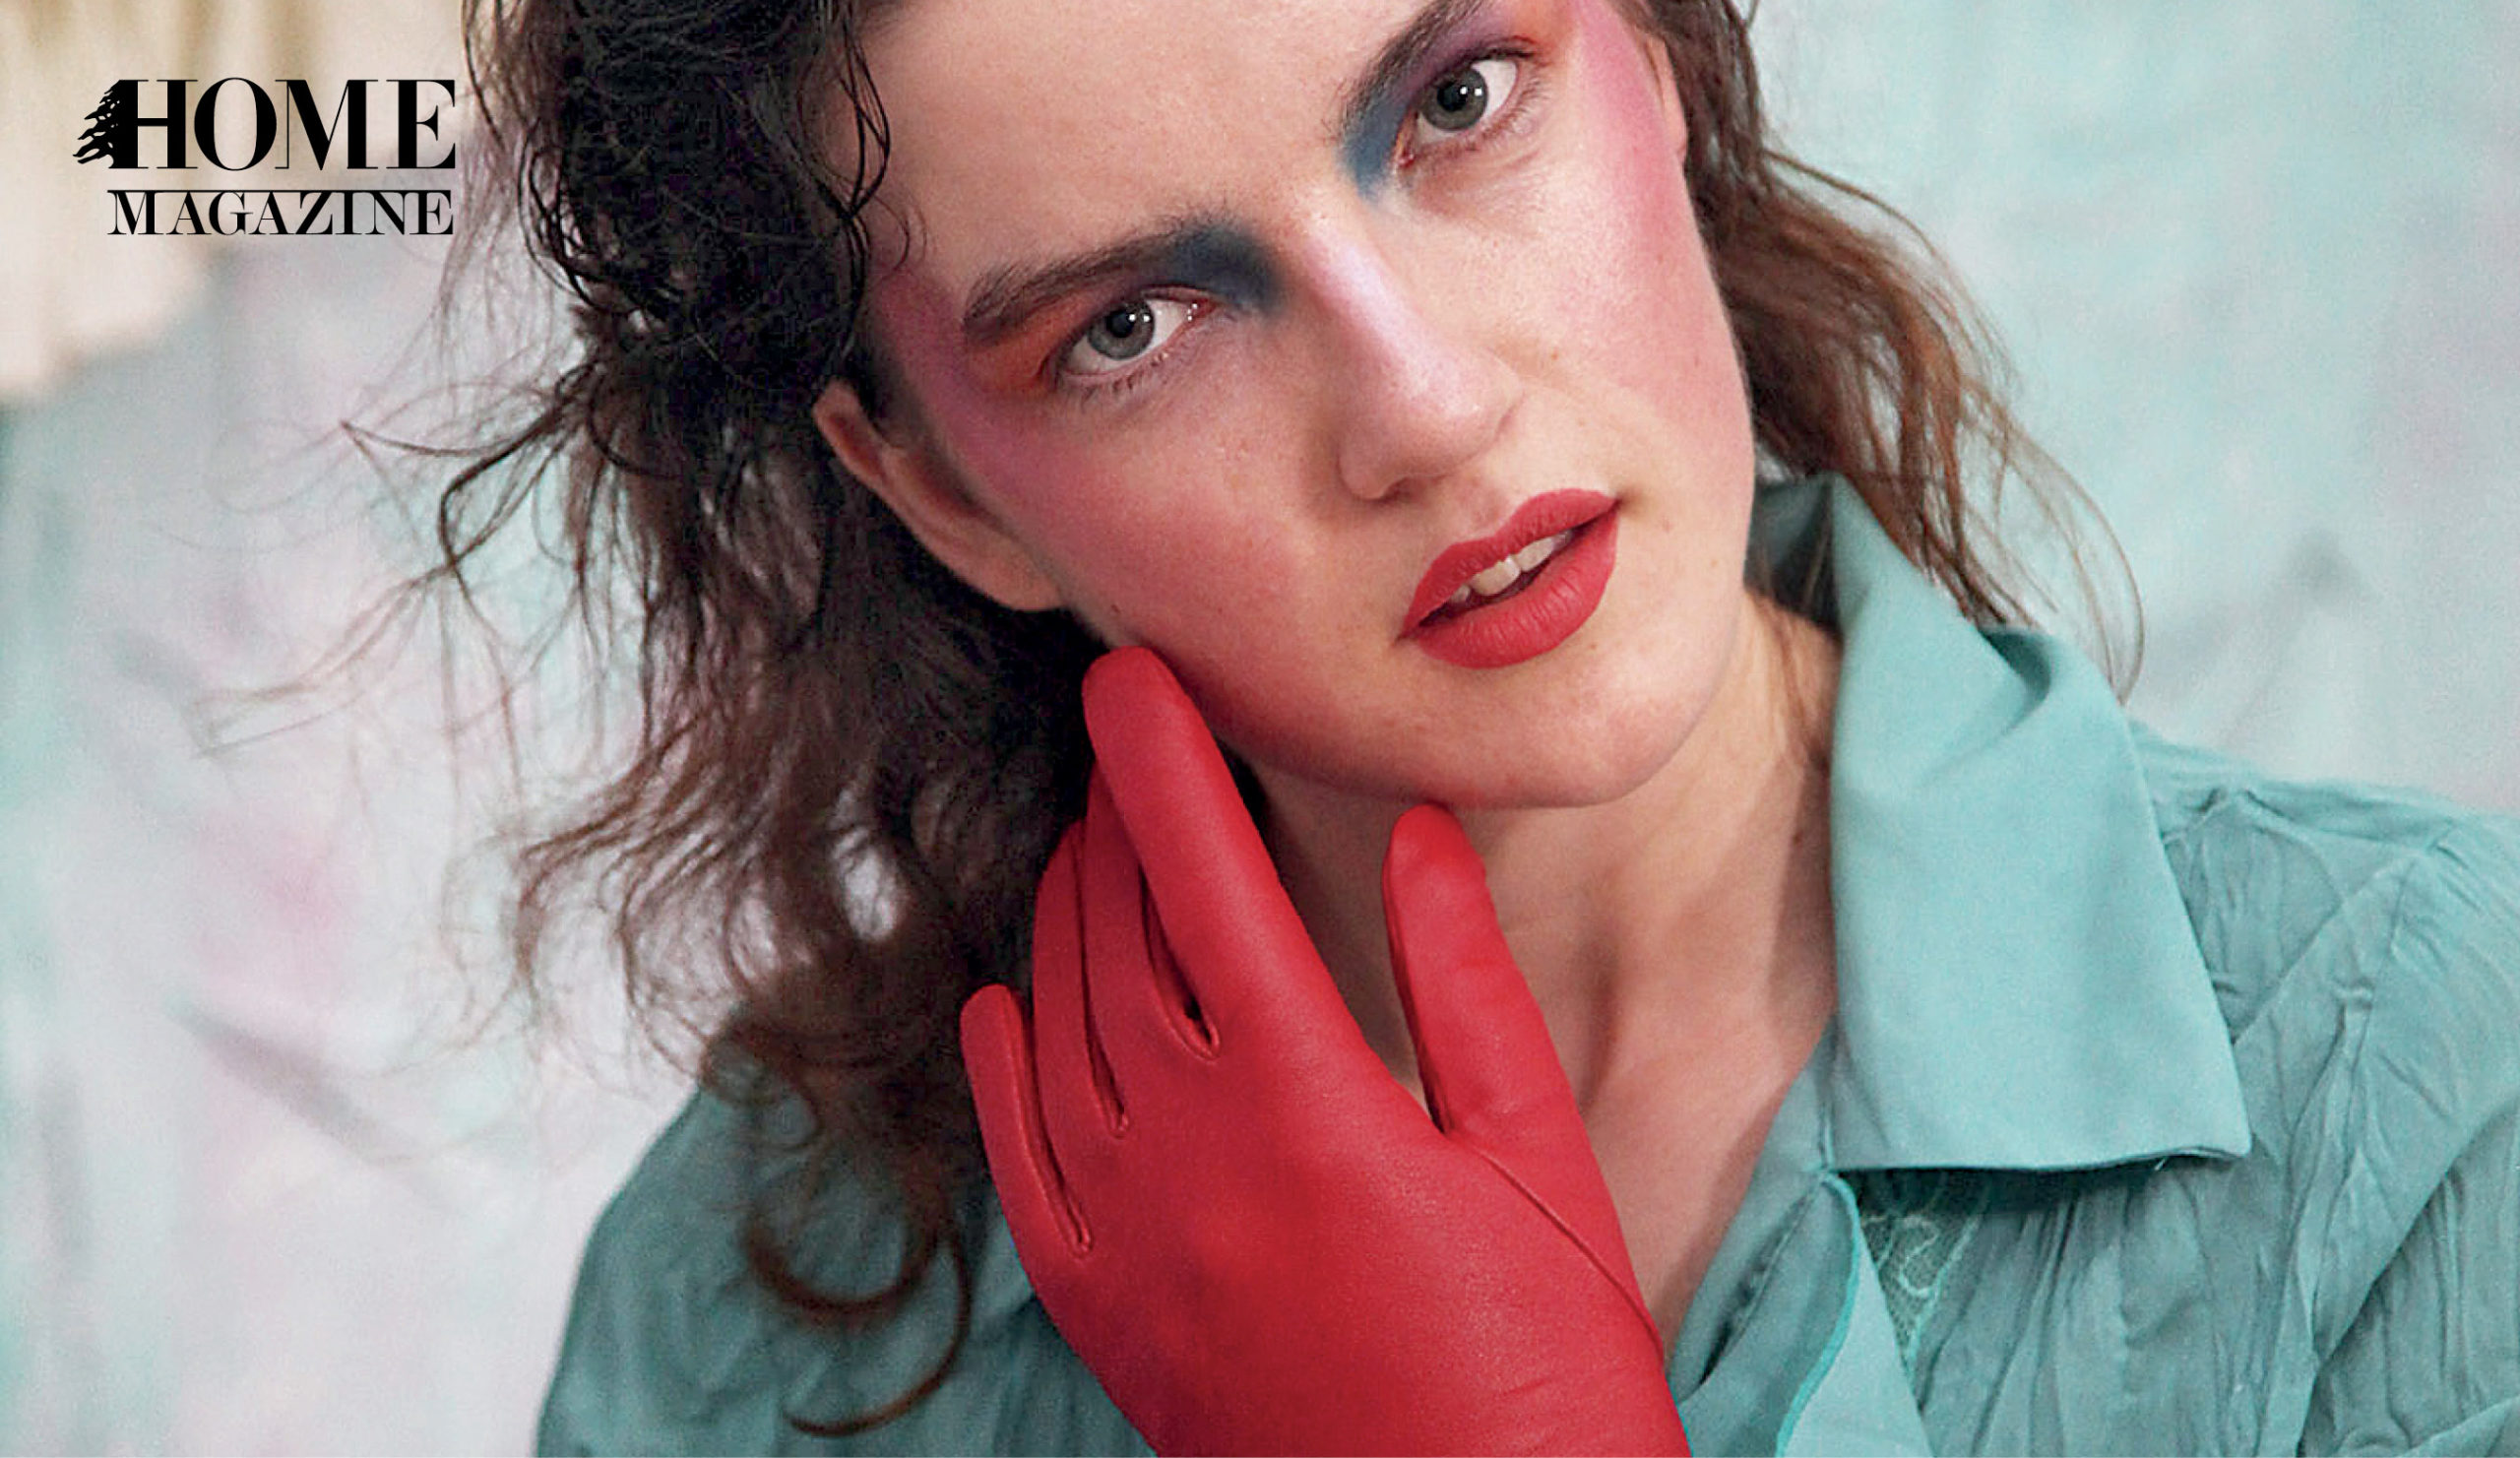 Face portrait of a woman with makeup, a red glove and a blue shirt